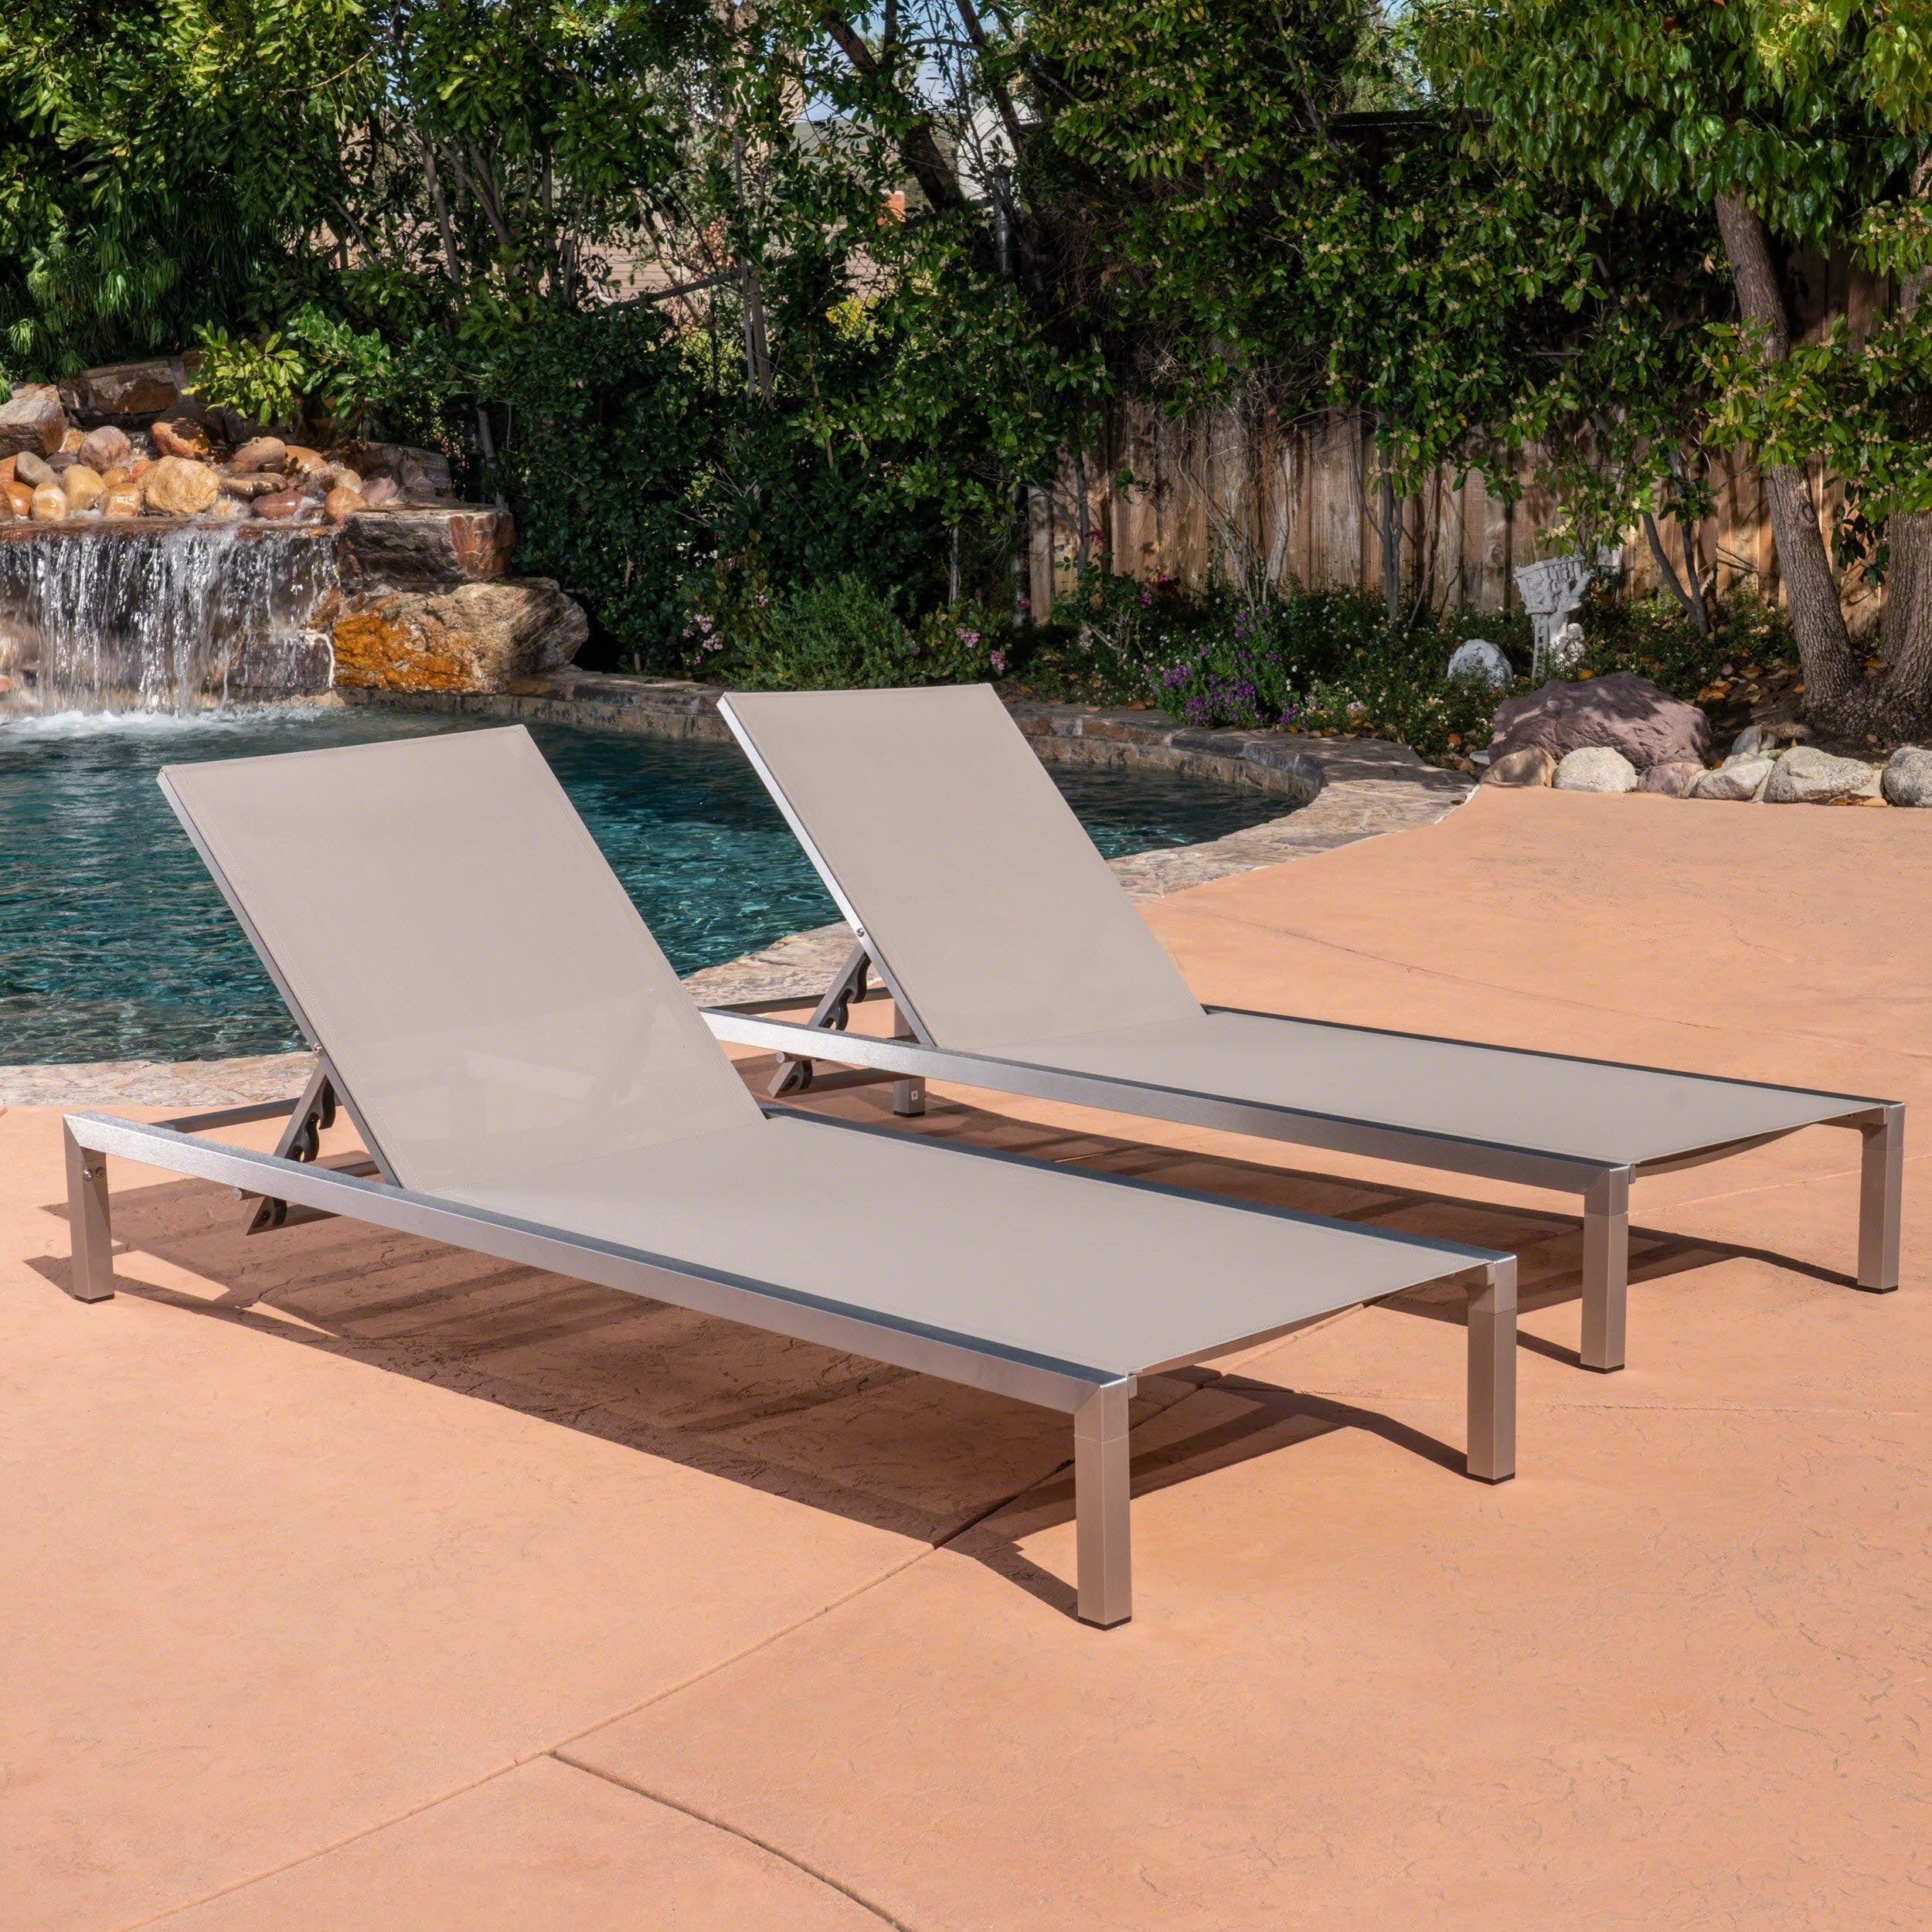 Shop Navan Outdoor Chaise Lounge (Set Of 2) By Christopher Knight Home    Free Shipping Today   Overstock.com   20713027